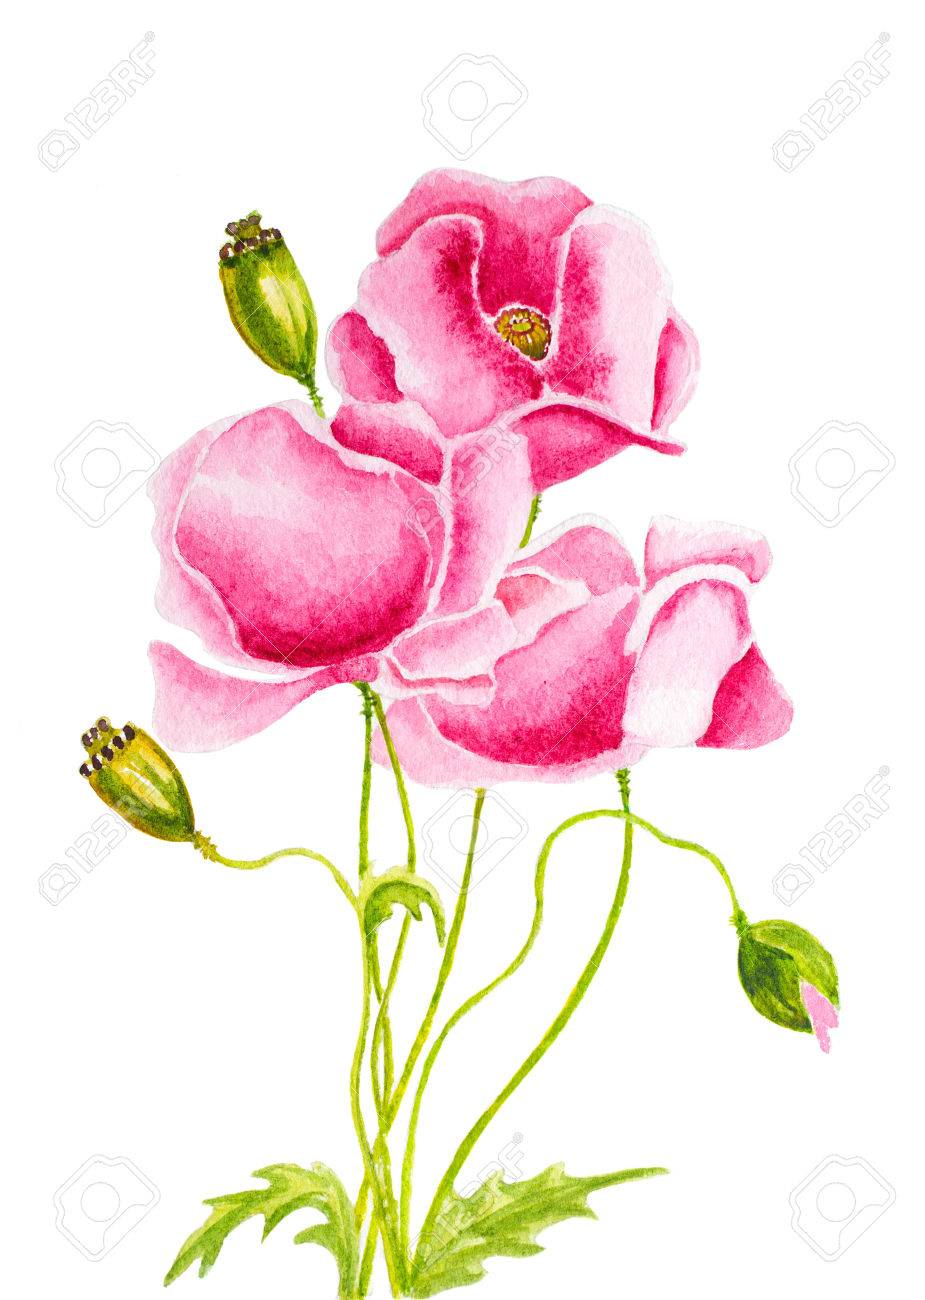 Pink Poppies Flowers Hand Painted With Watercolor On White Stock